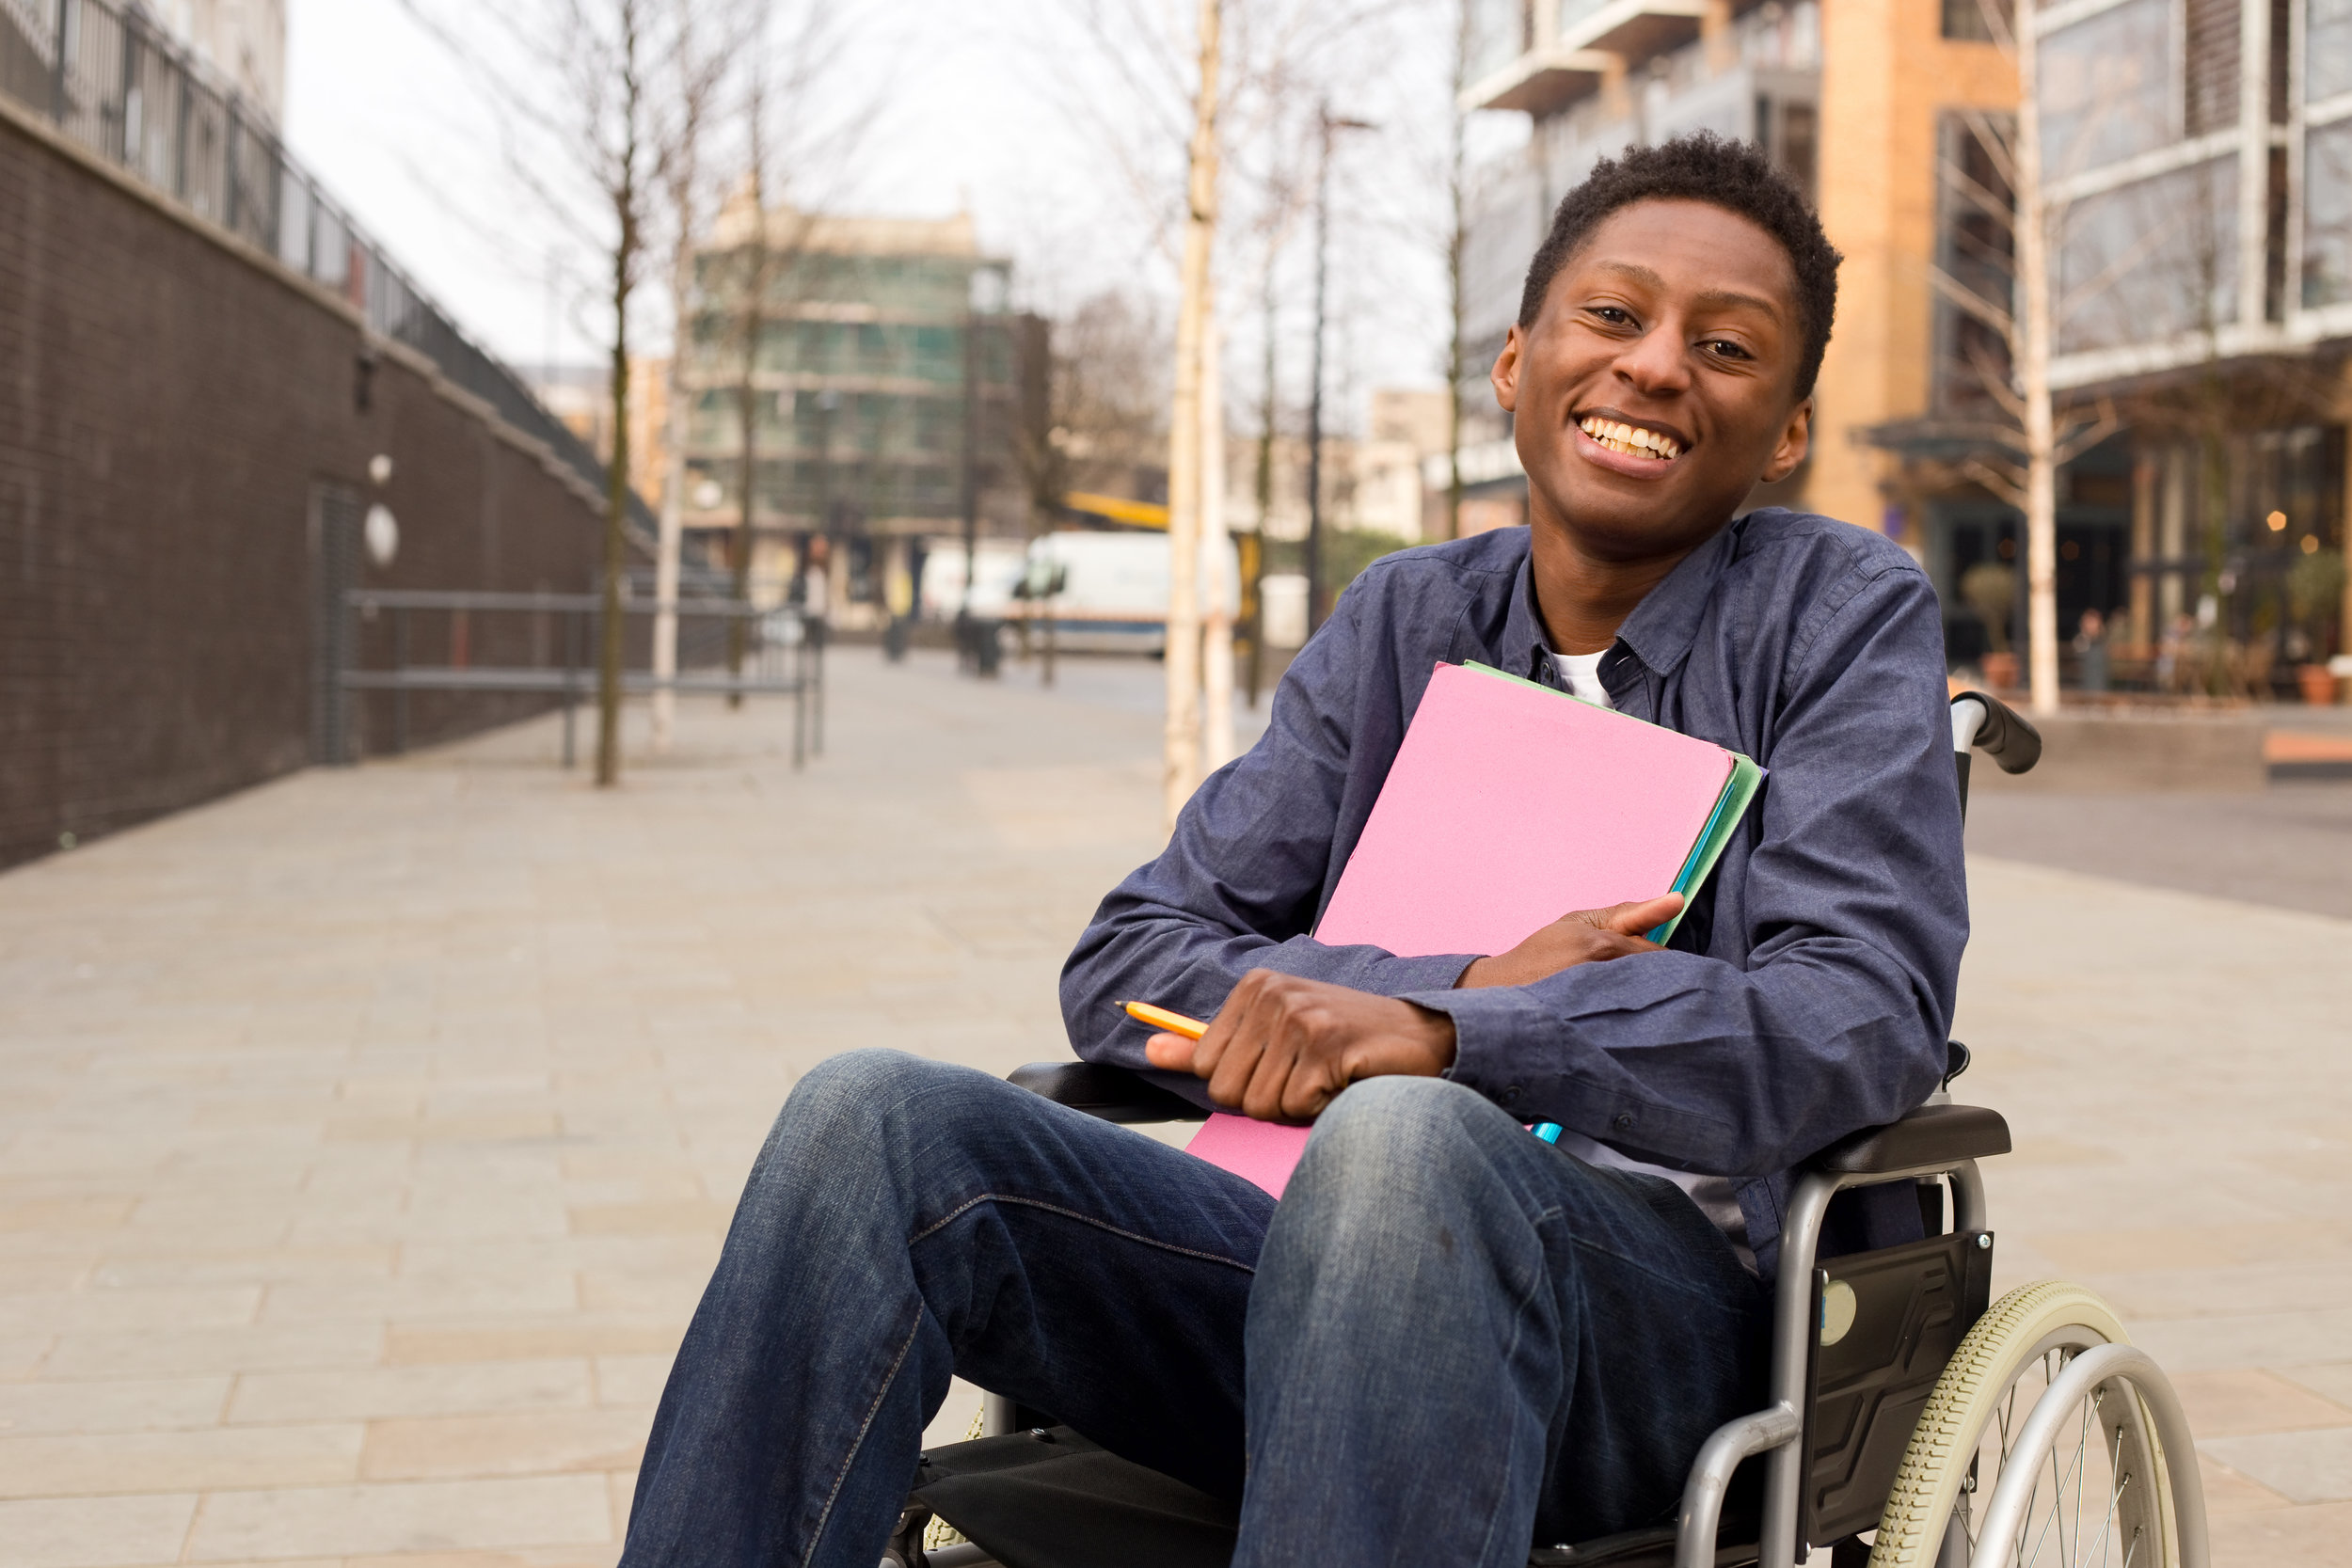 Happy young disabled man in a wheelchair holding folders.